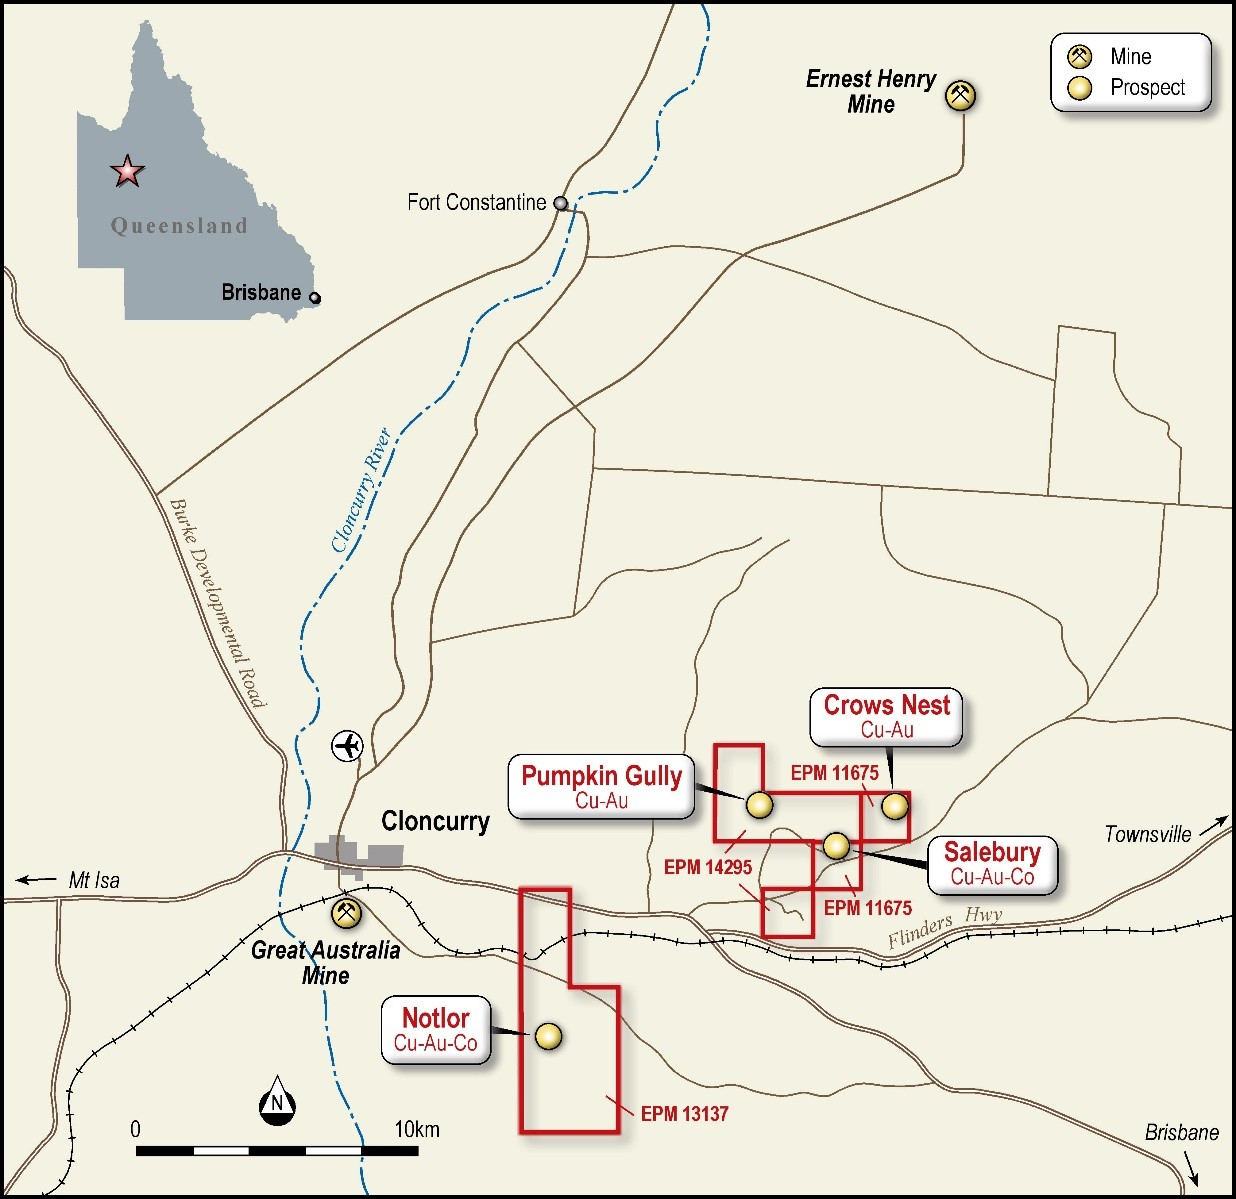 Cloncurry East Project